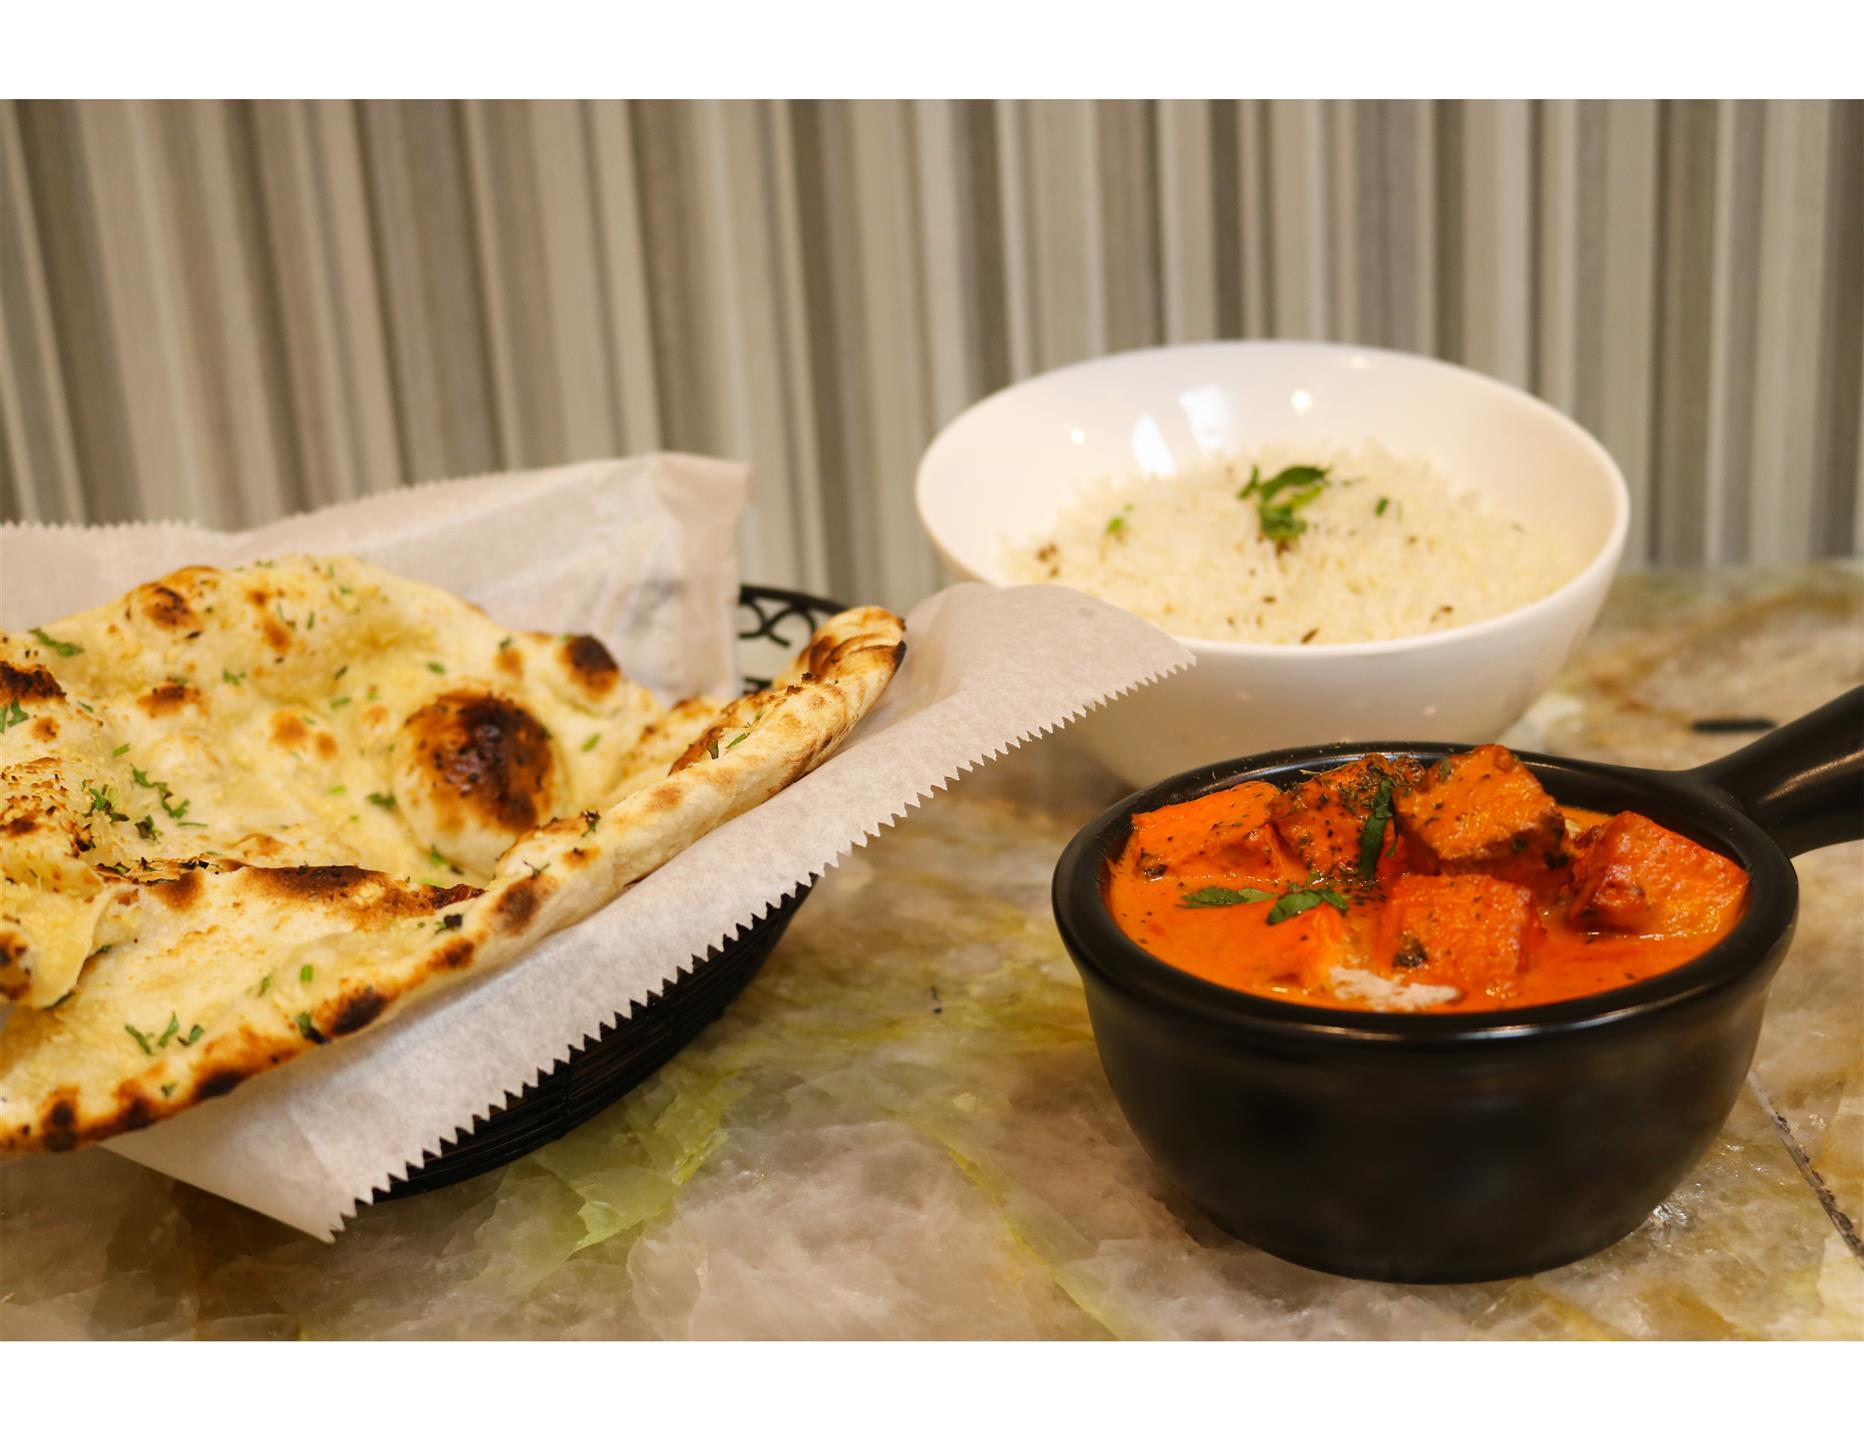 paneer with naan and rice